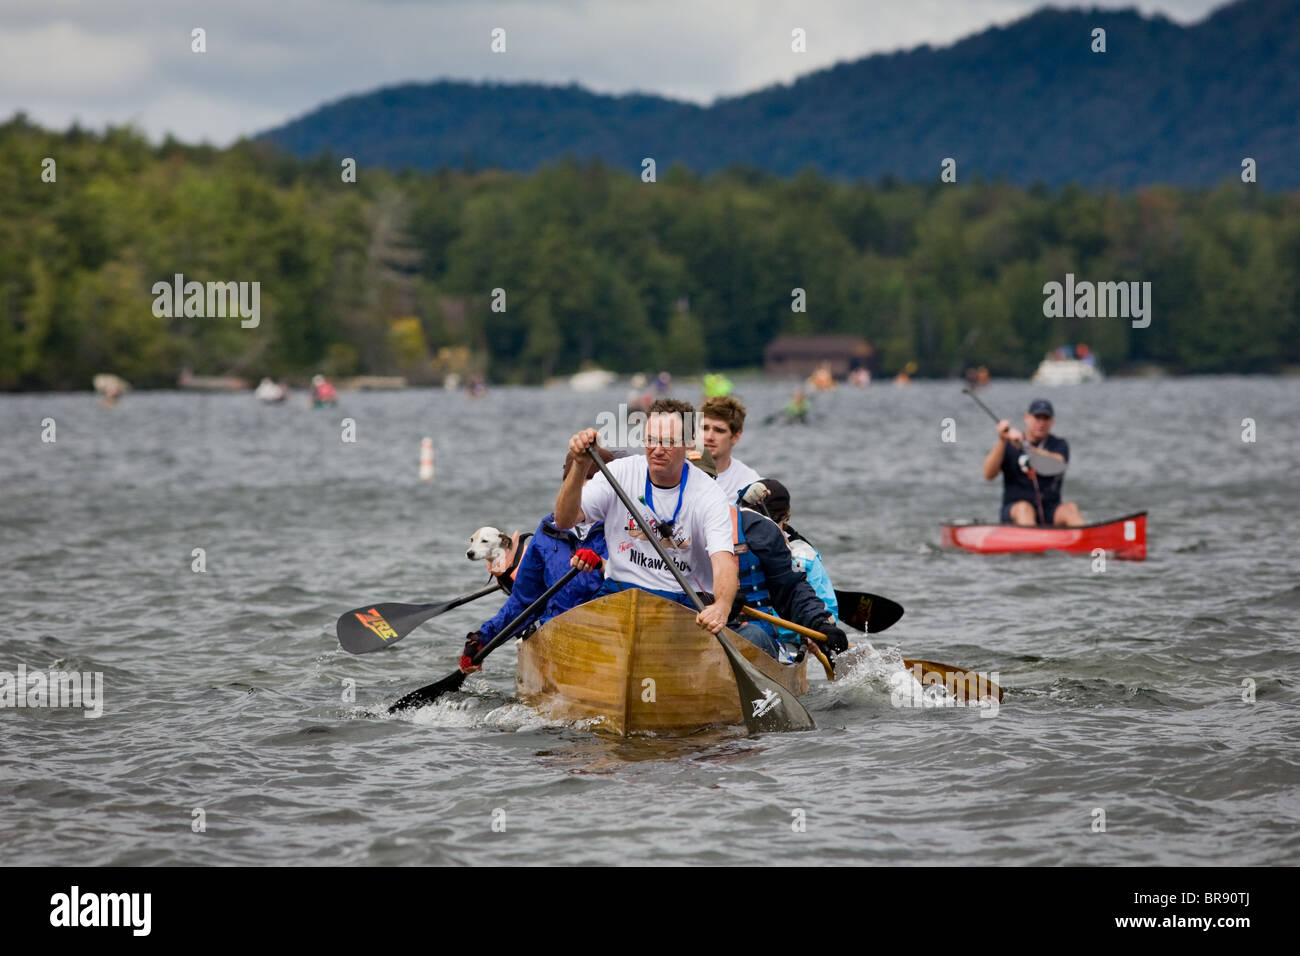 Paddlers with dog cross Fulton Chain of Lakes at Inlet, New York, during Adirondack Canoe Classic, '90-Miler' - Stock Image